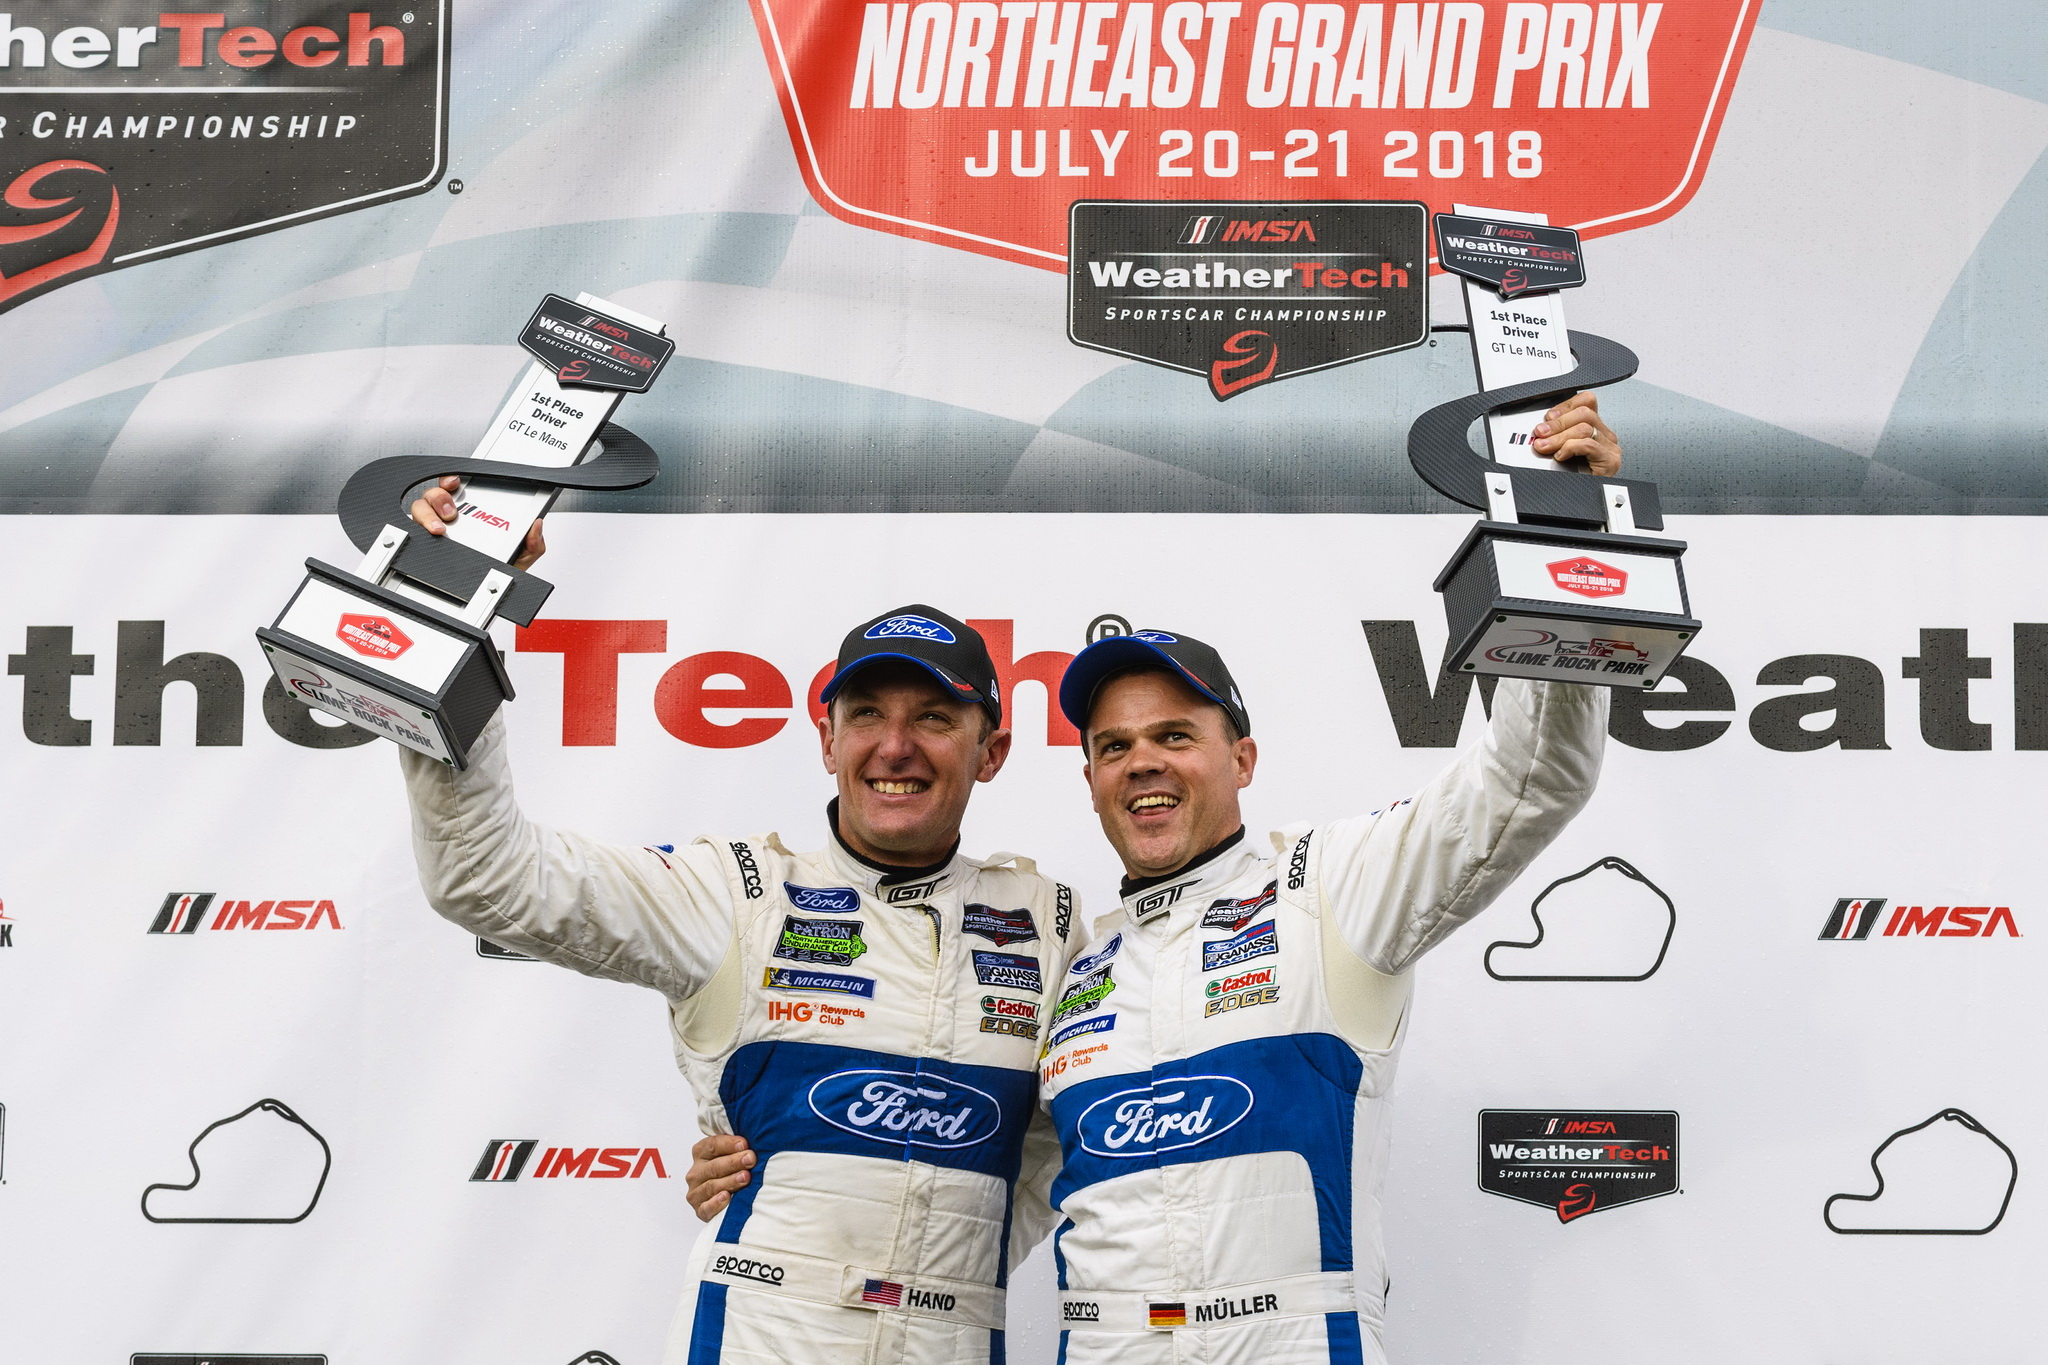 Three In a Row: Ford Chip Ganassi Racing Takes Come-From-Behind Victory in IMSA Northeast Grand Prix